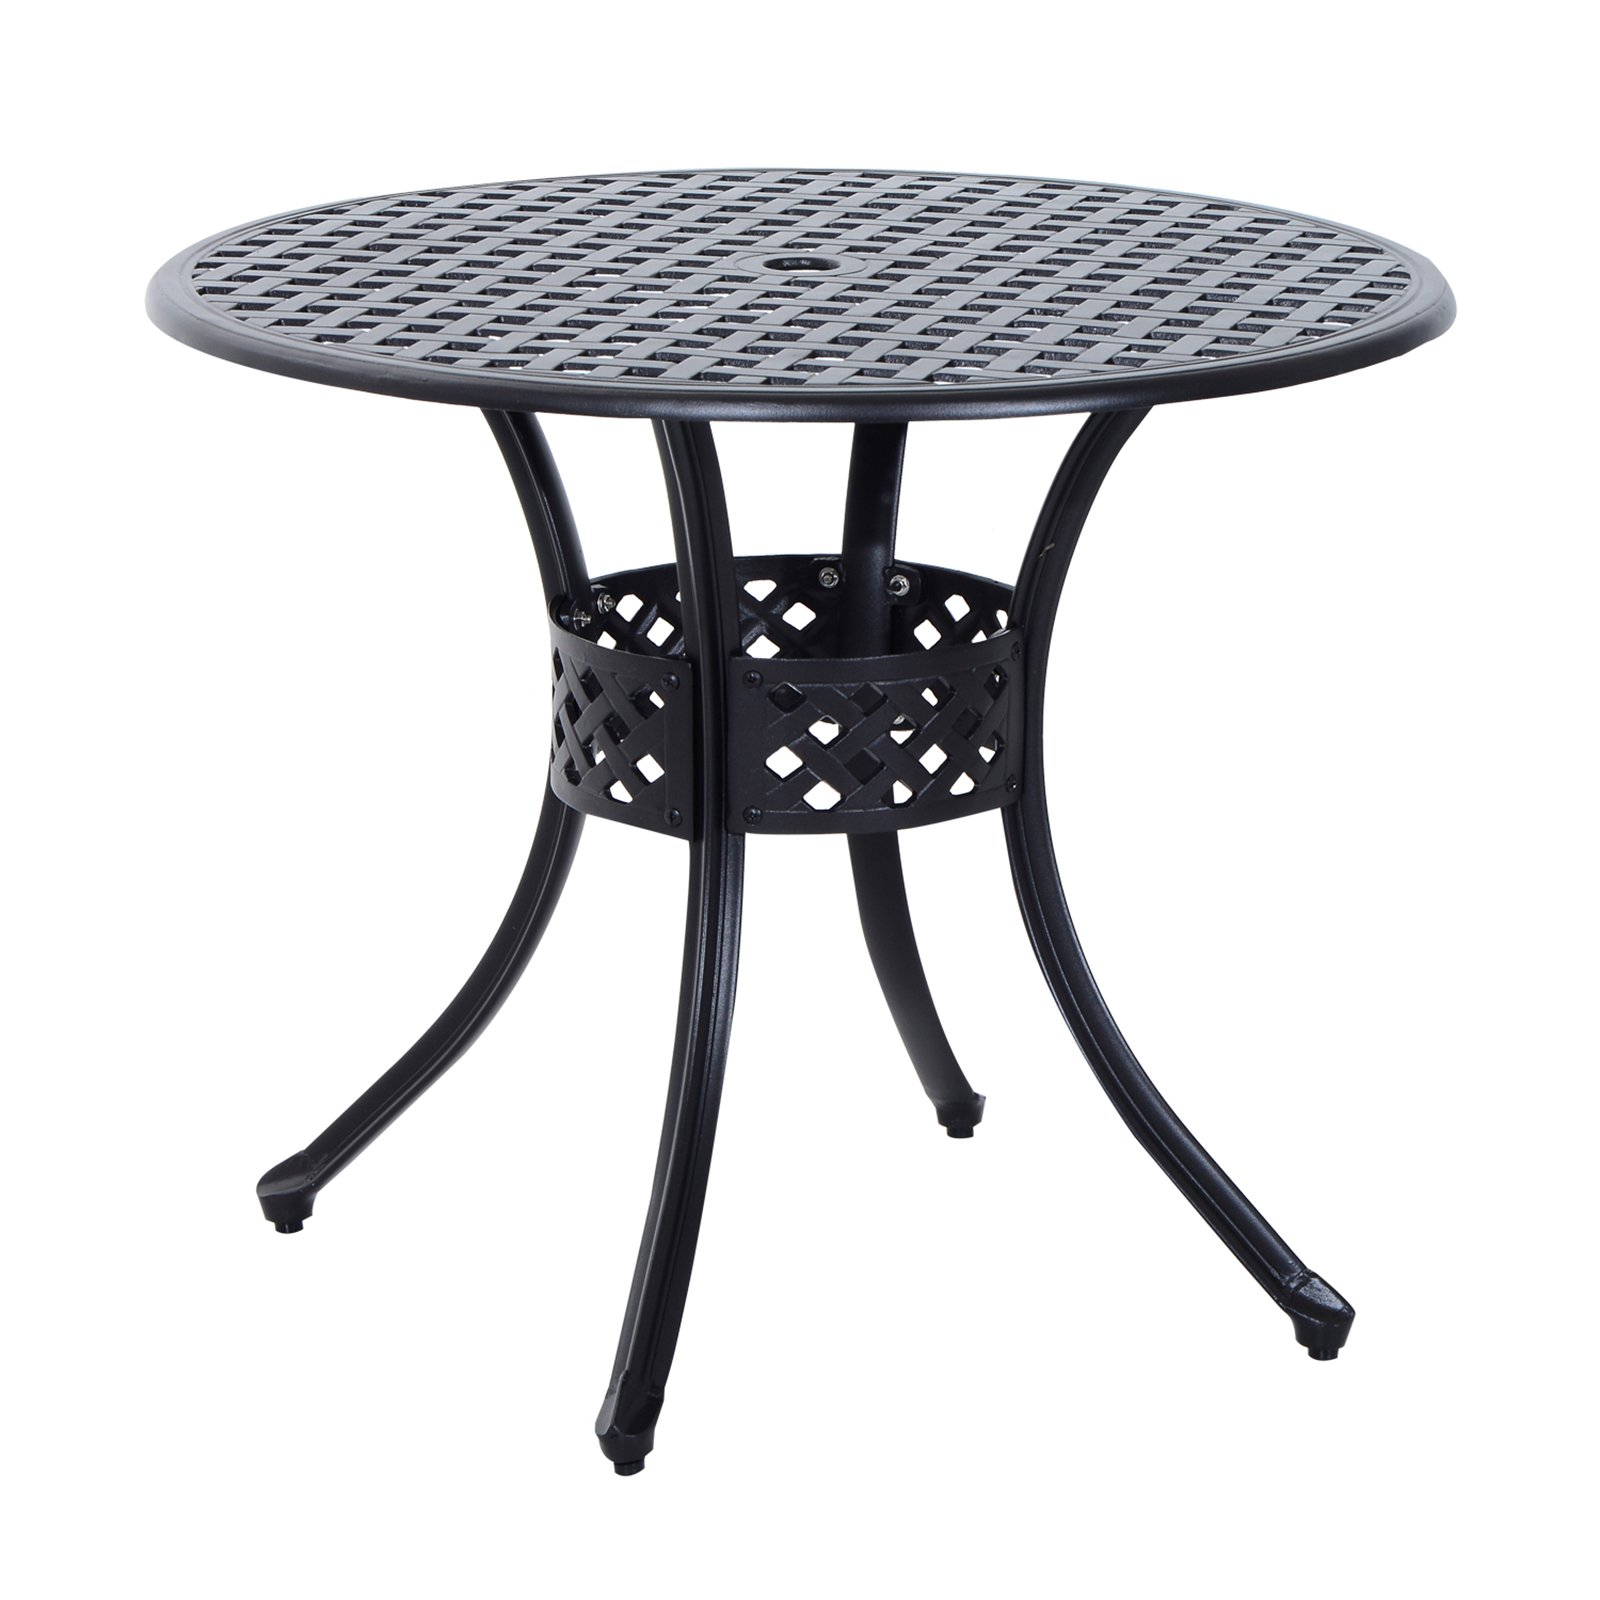 Outsunny Cast Aluminum Patio Dining Table